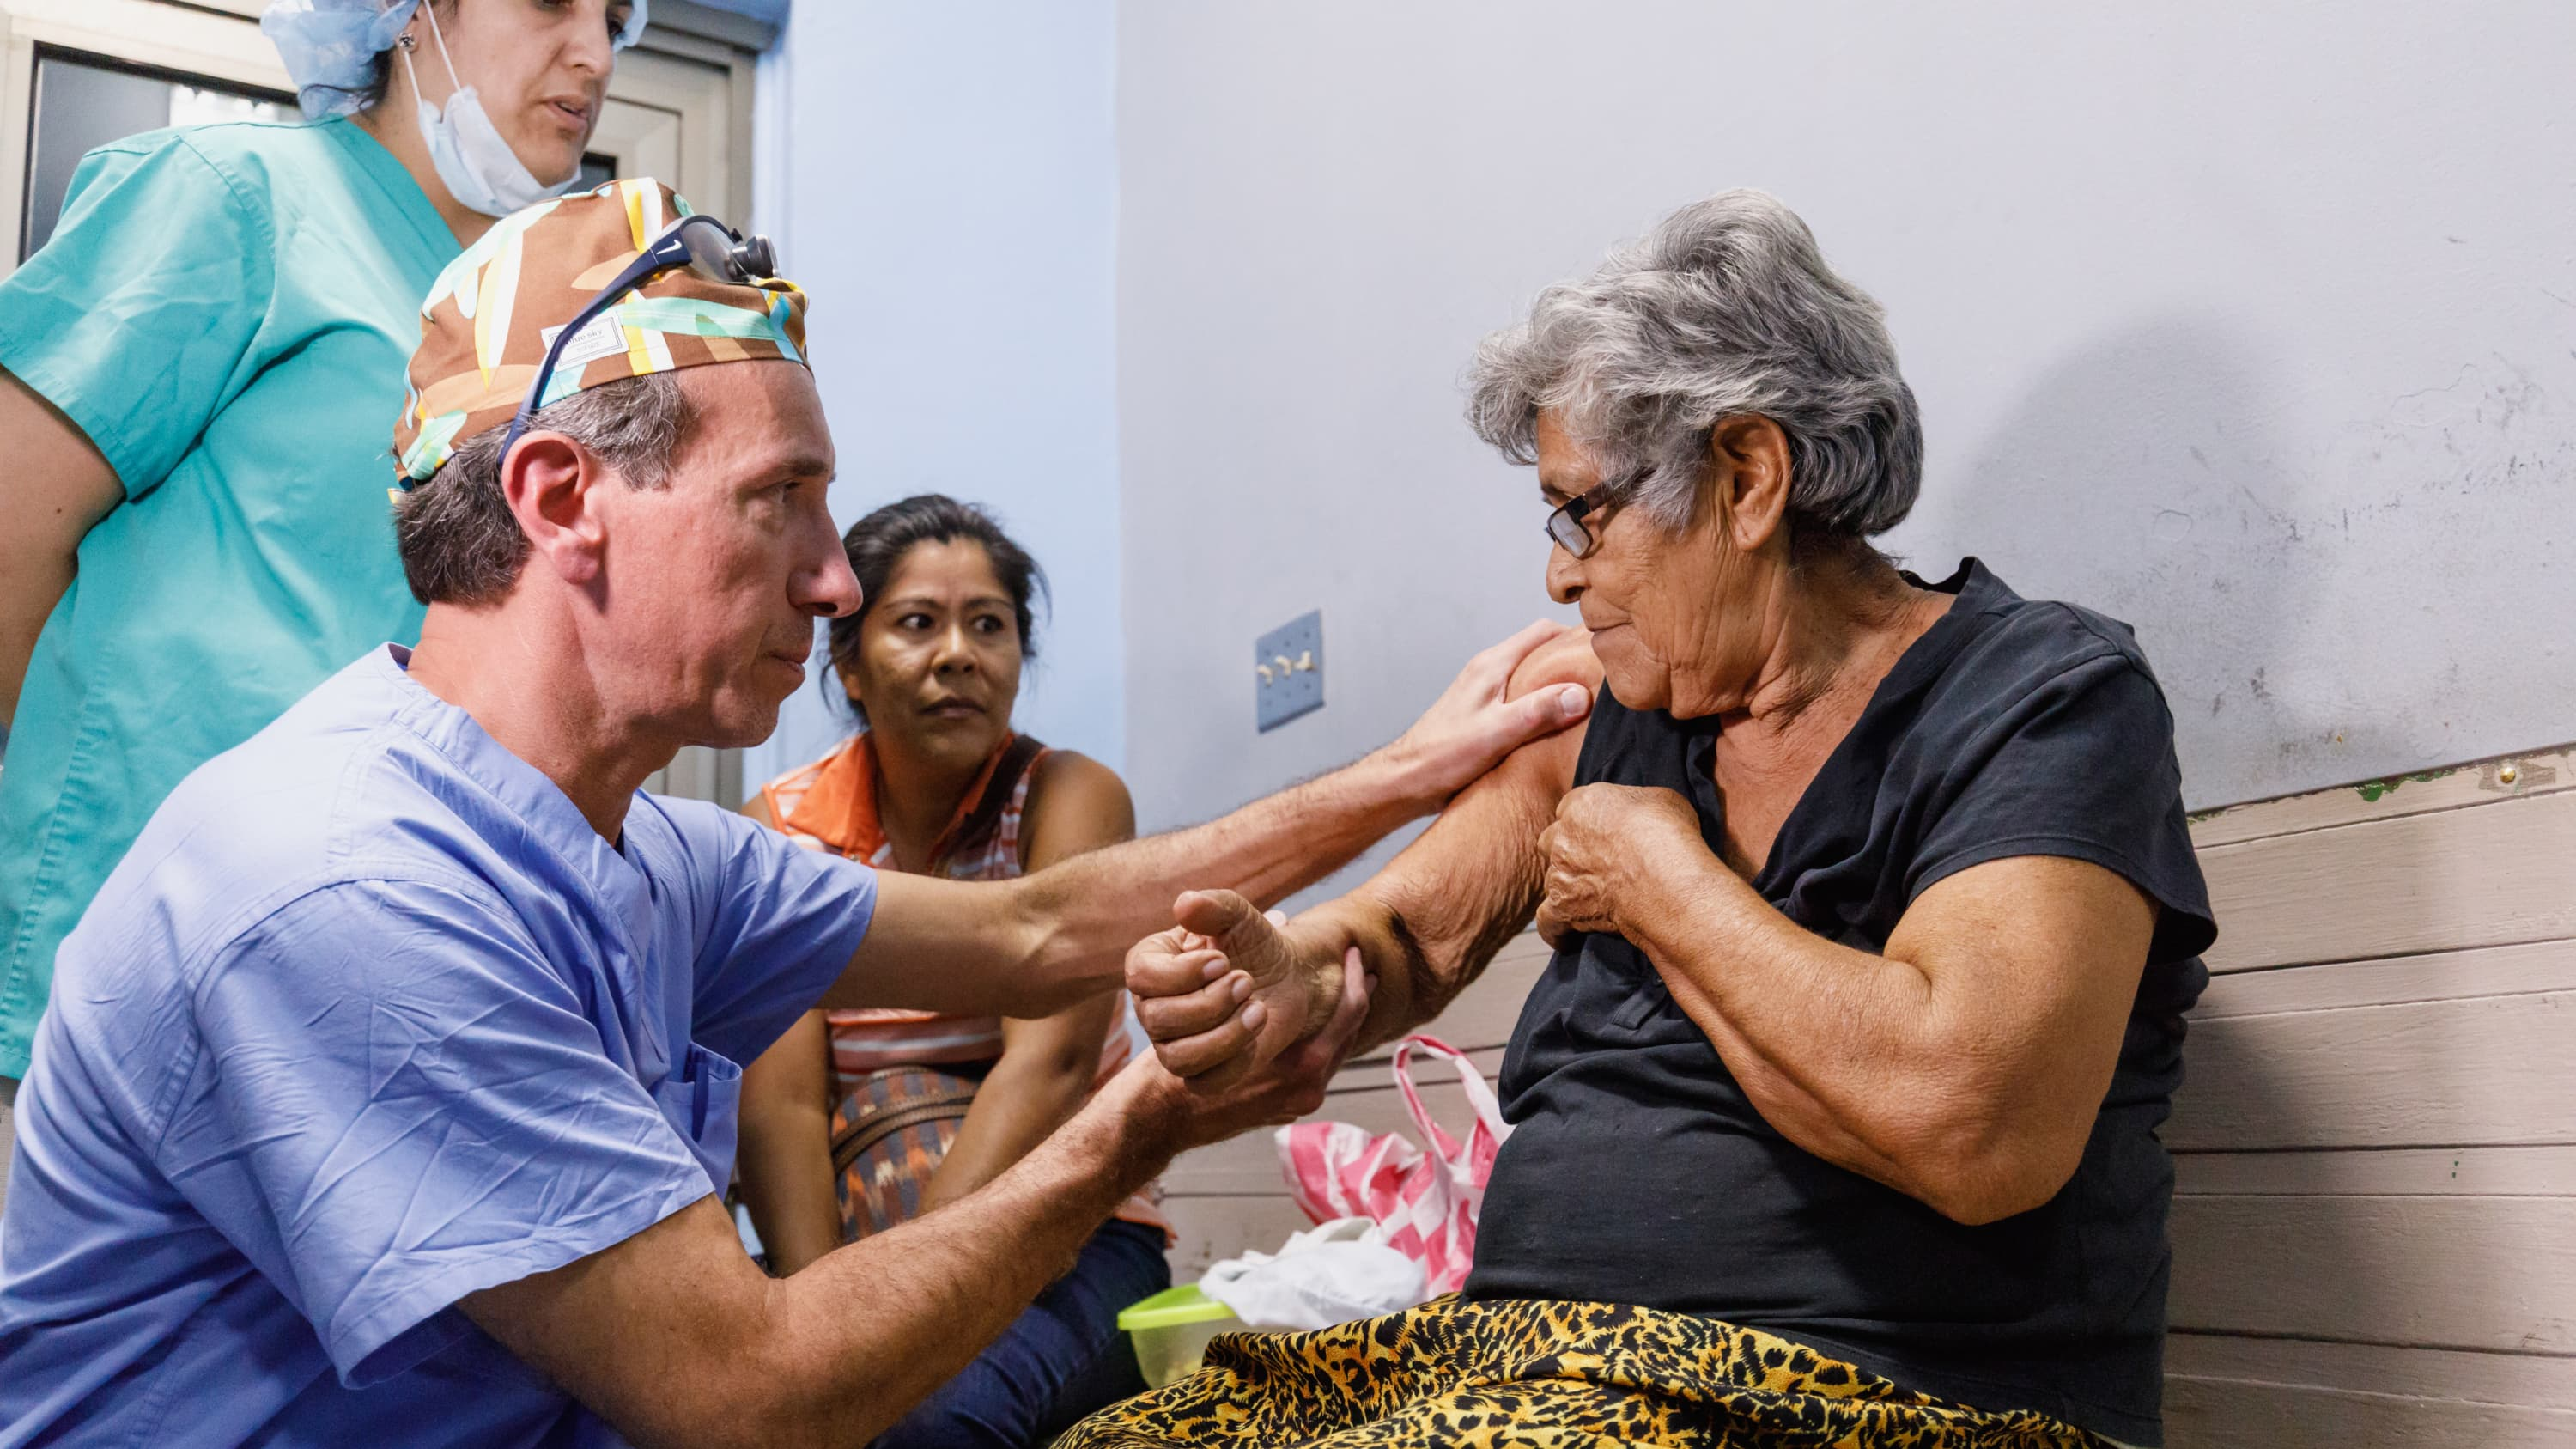 A doctor gently examines an elderly woman's arm and shoulder